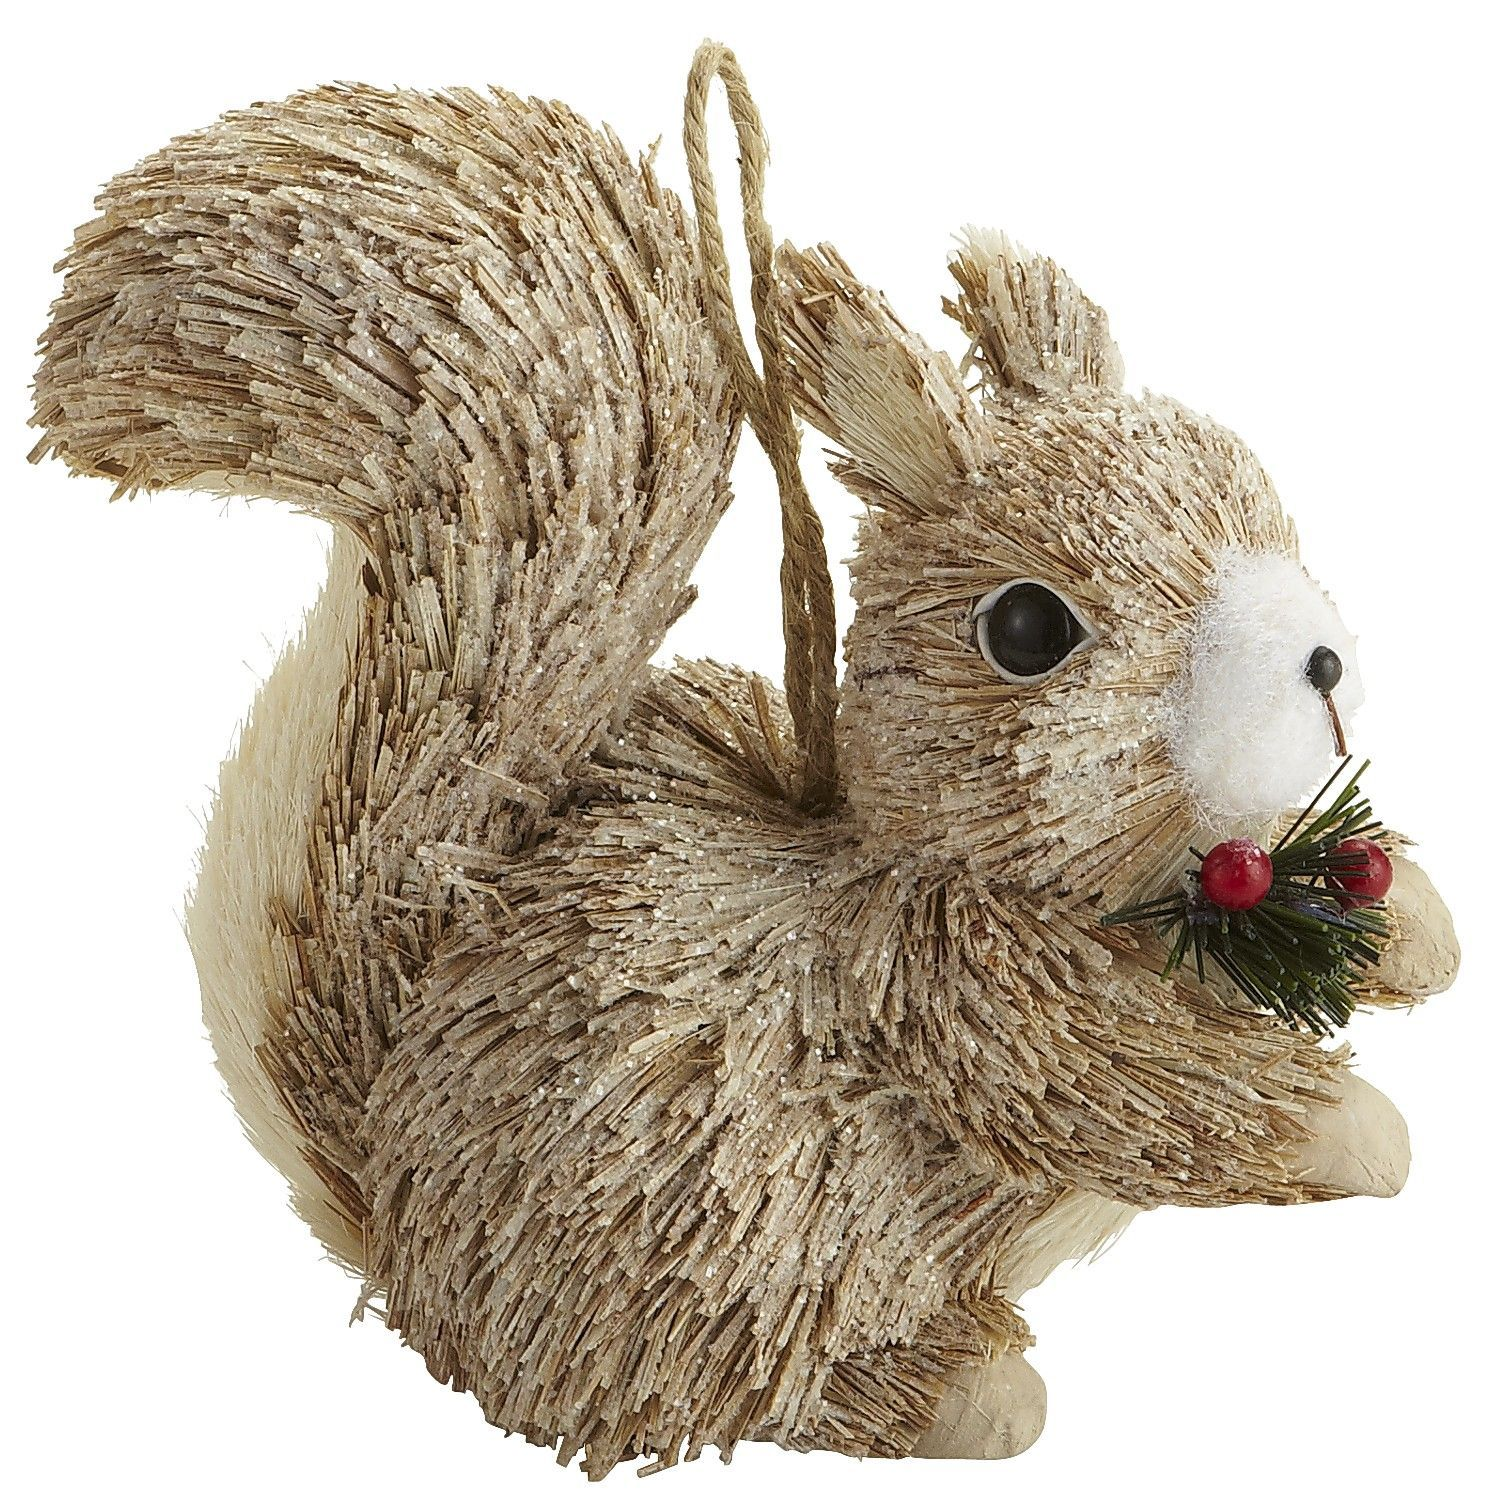 Nature's Merriment: Pier 1 Natural Squirrel Ornament | Pinterest ...